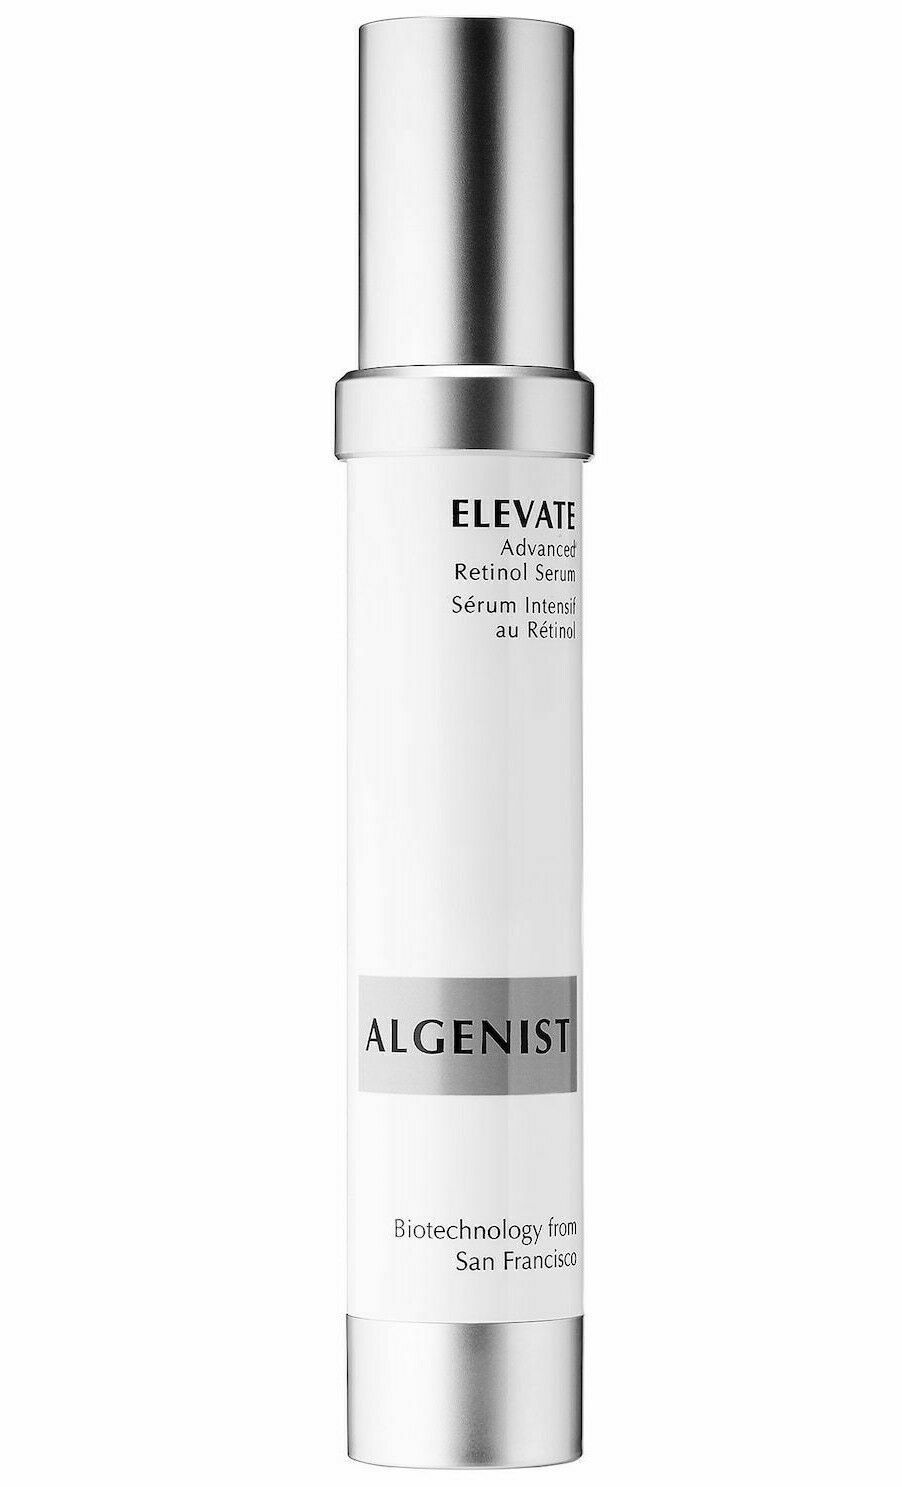 Algenist Retinol Firming & Lifting Serum Full Size 1 Oz Brand New Boxed